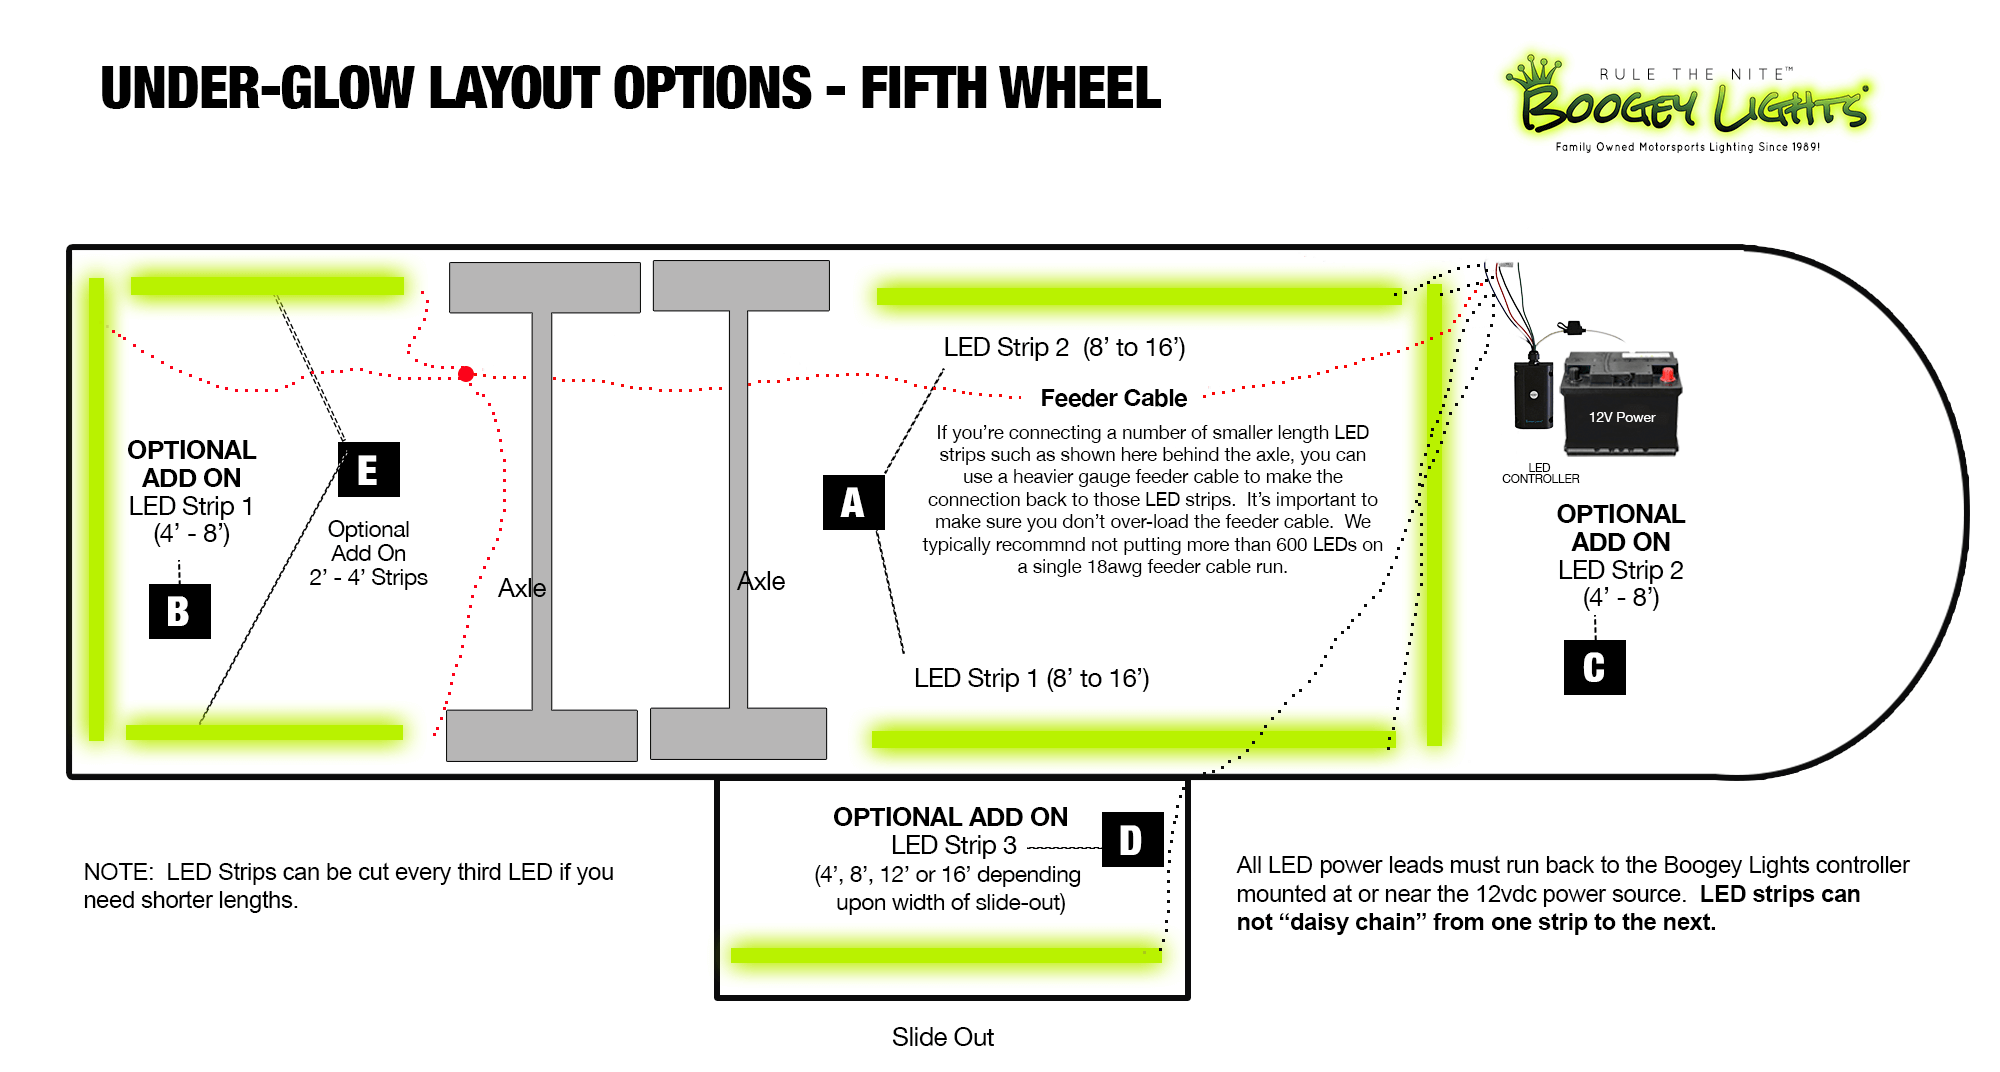 Fifth Wheel Placement Options